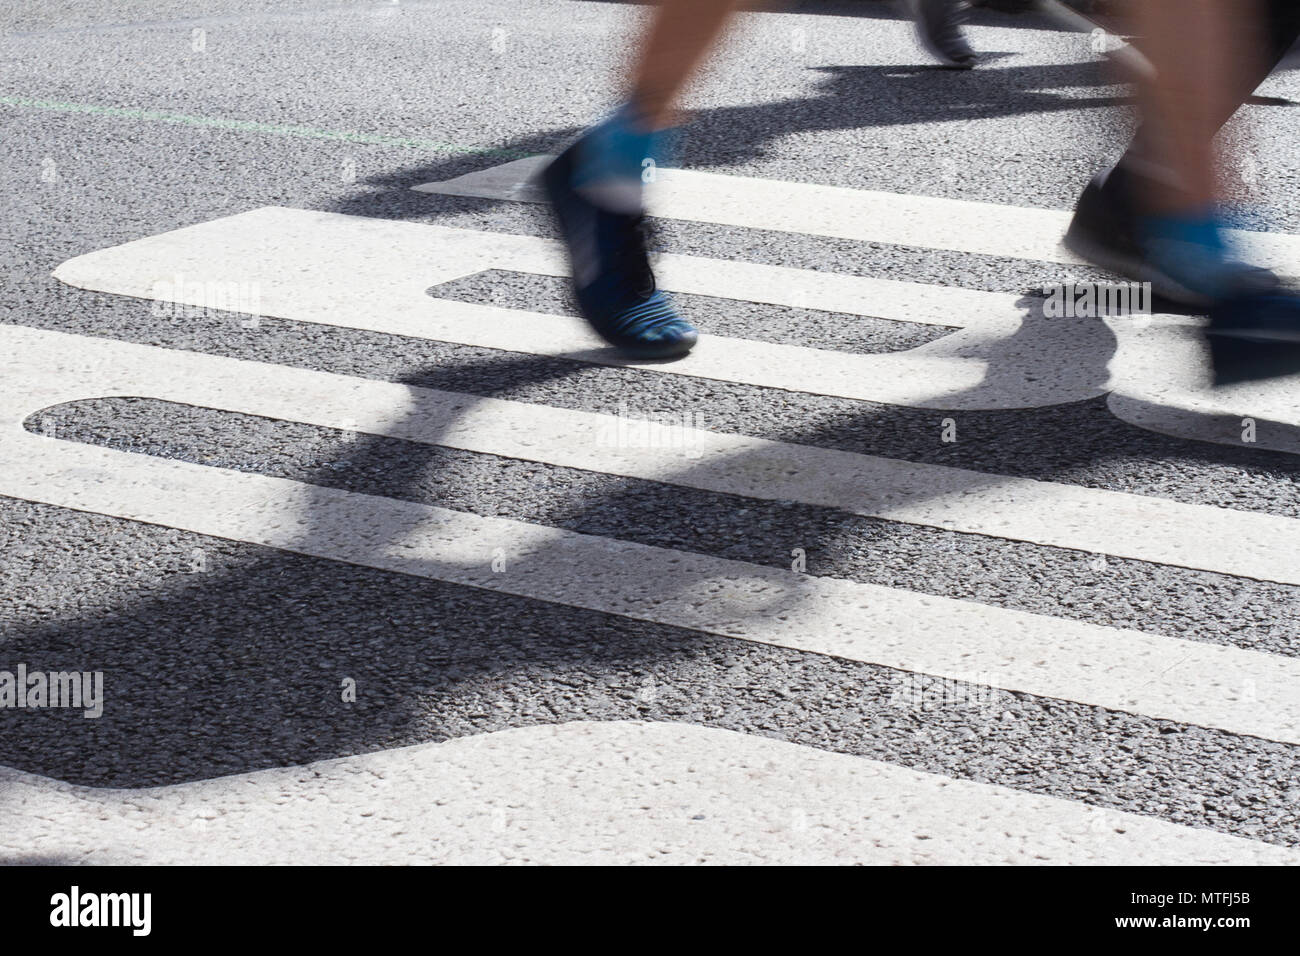 closeup side view of marathon runners feet and legs with motion blur running in the light of the morning on city tarmac road - Stock Image